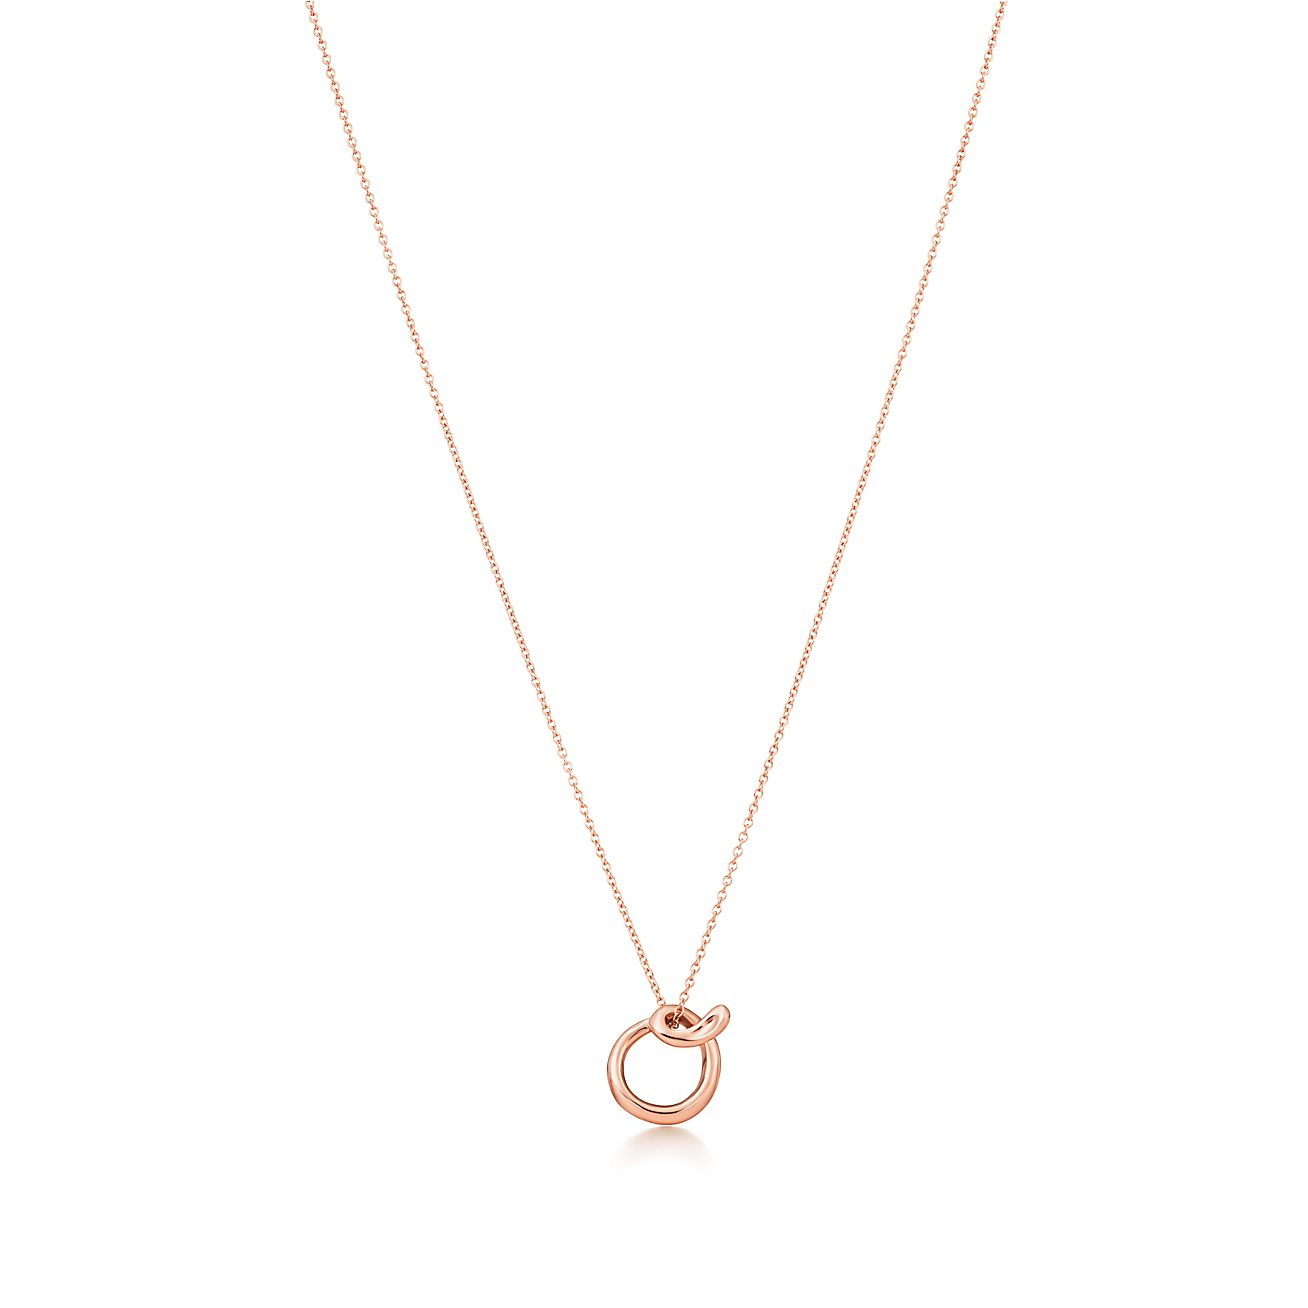 Elsa Peretti Alphabet pendant in 18k rose gold Letters A-Z available - Size P Tiffany & Co. 63VnWQwOR